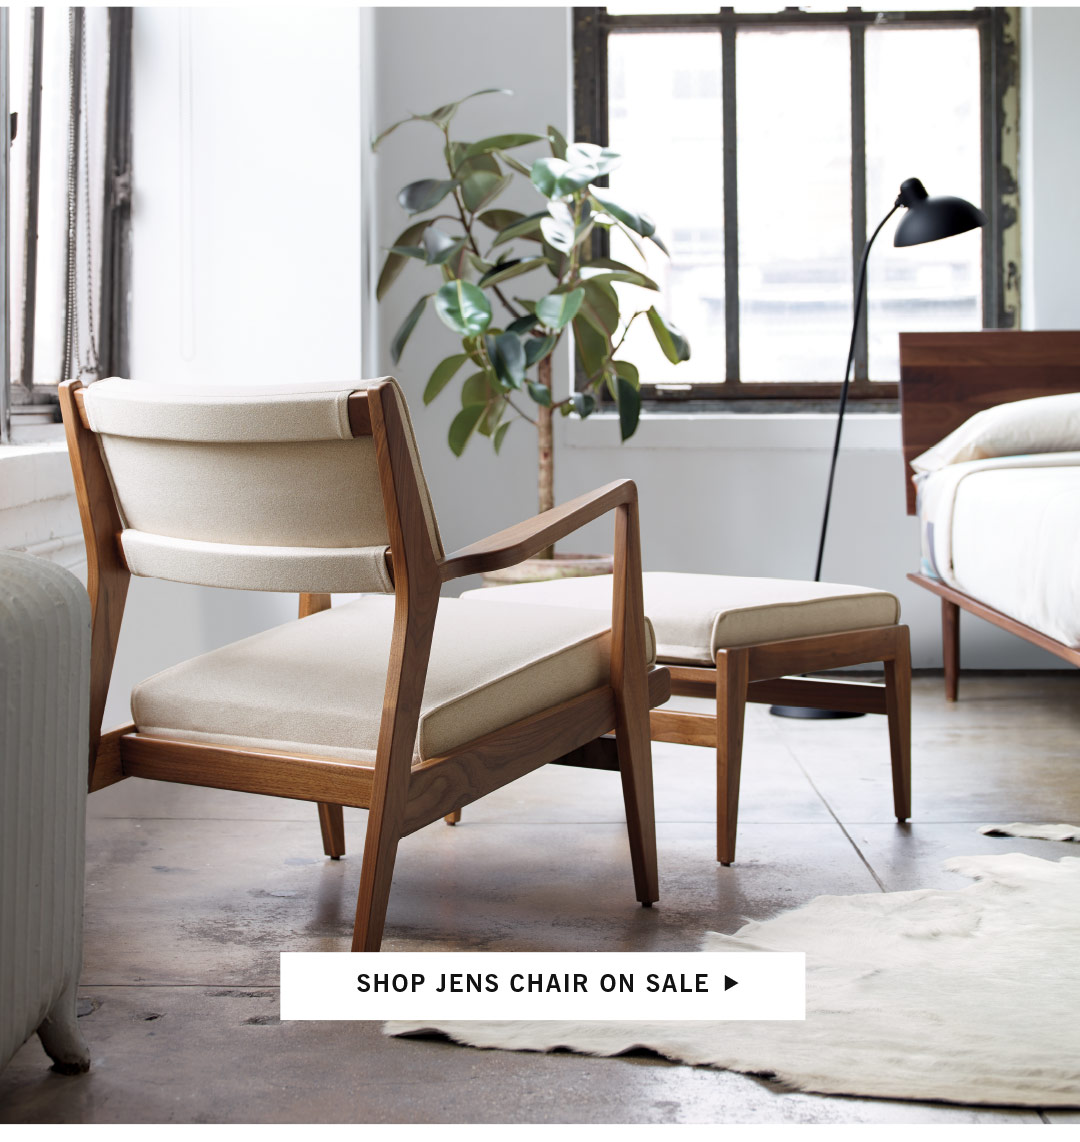 Jens Chair on Sale